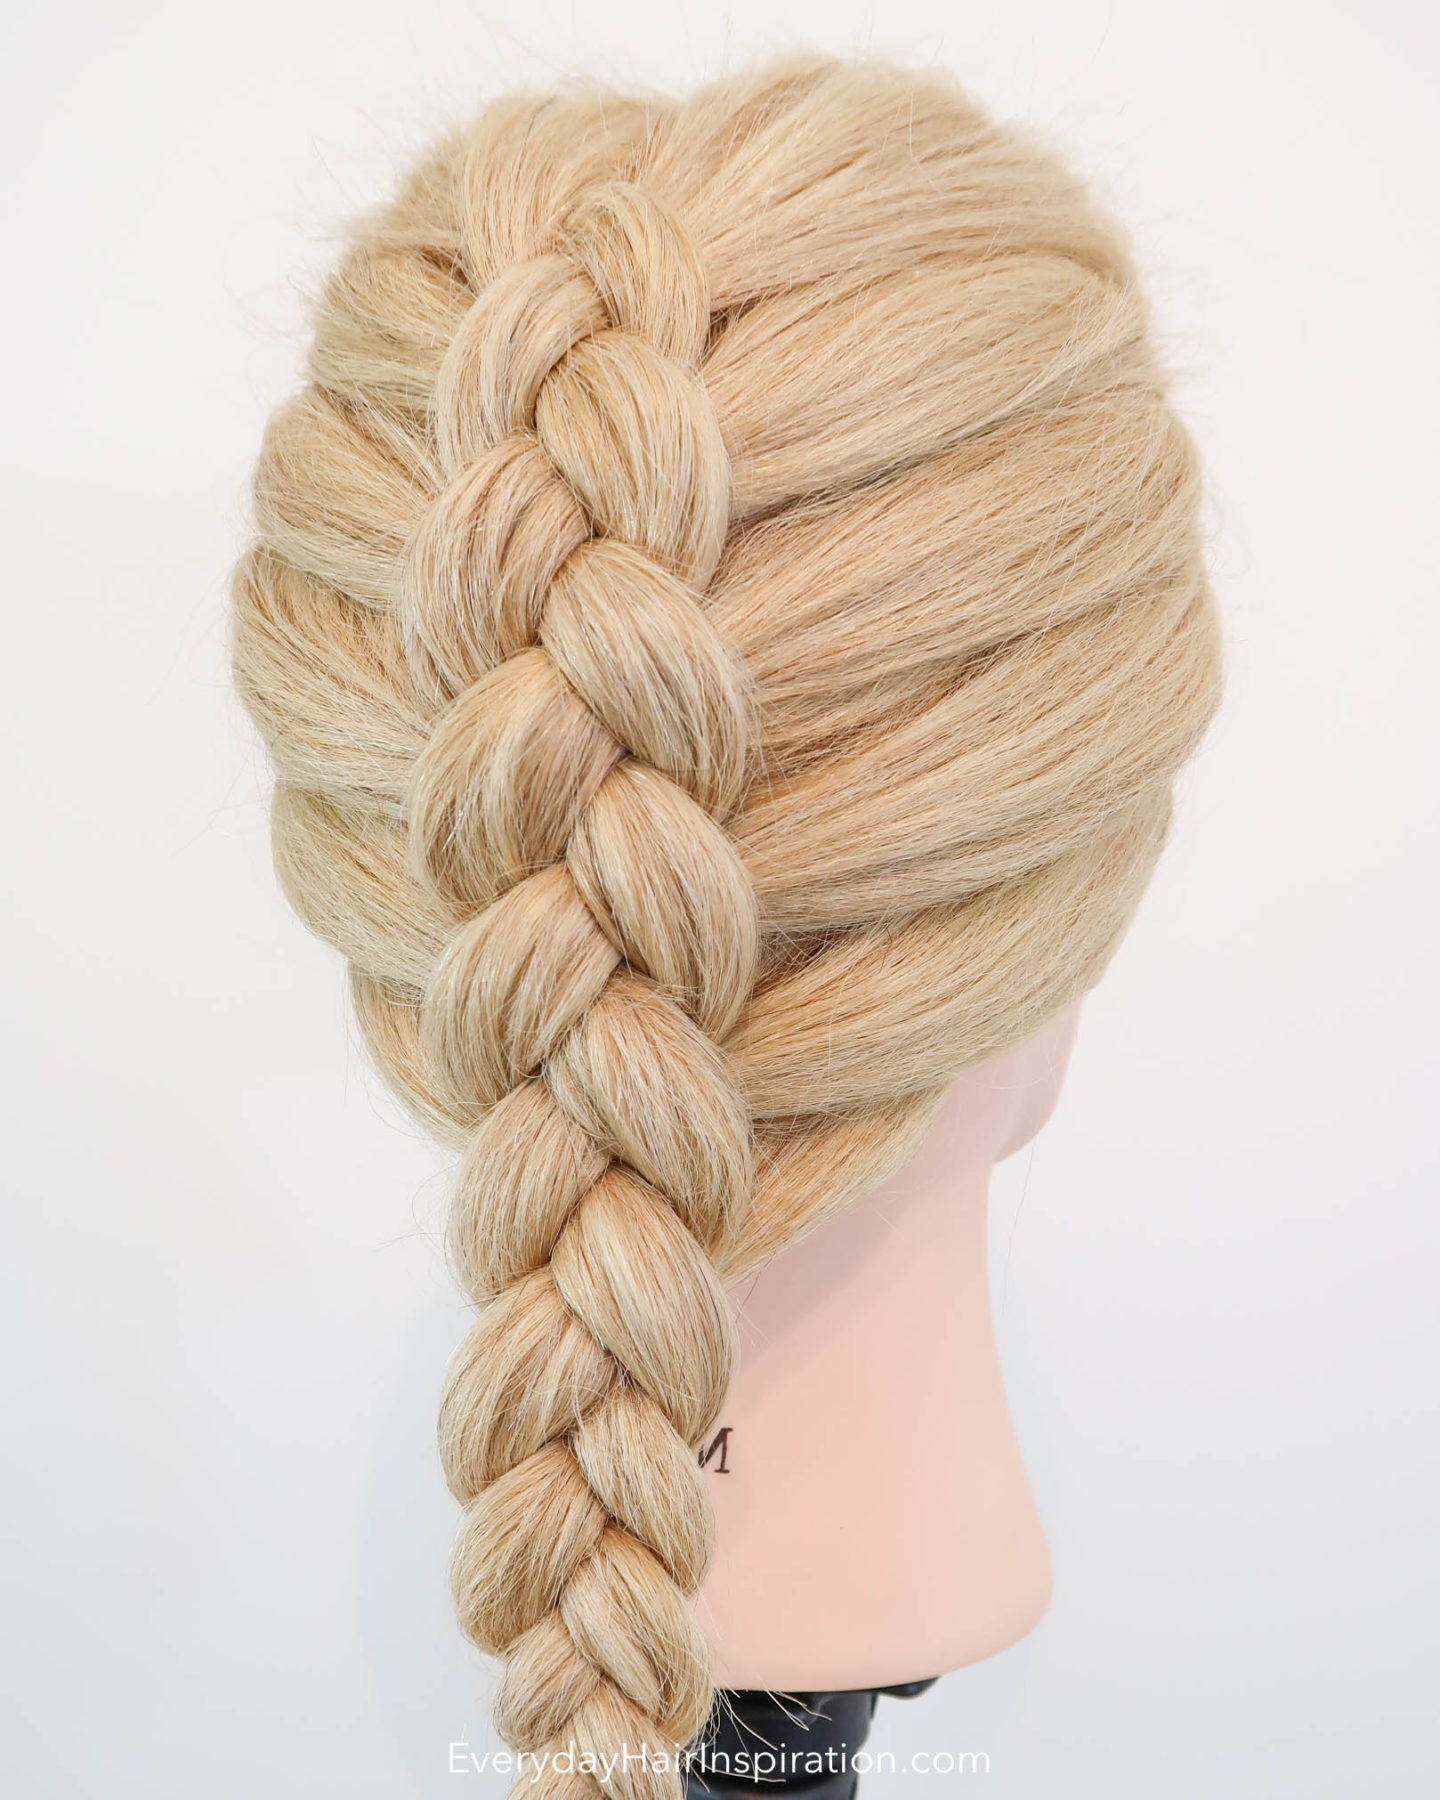 Blonde hairdresser doll with a single dutch braid down the back of the head